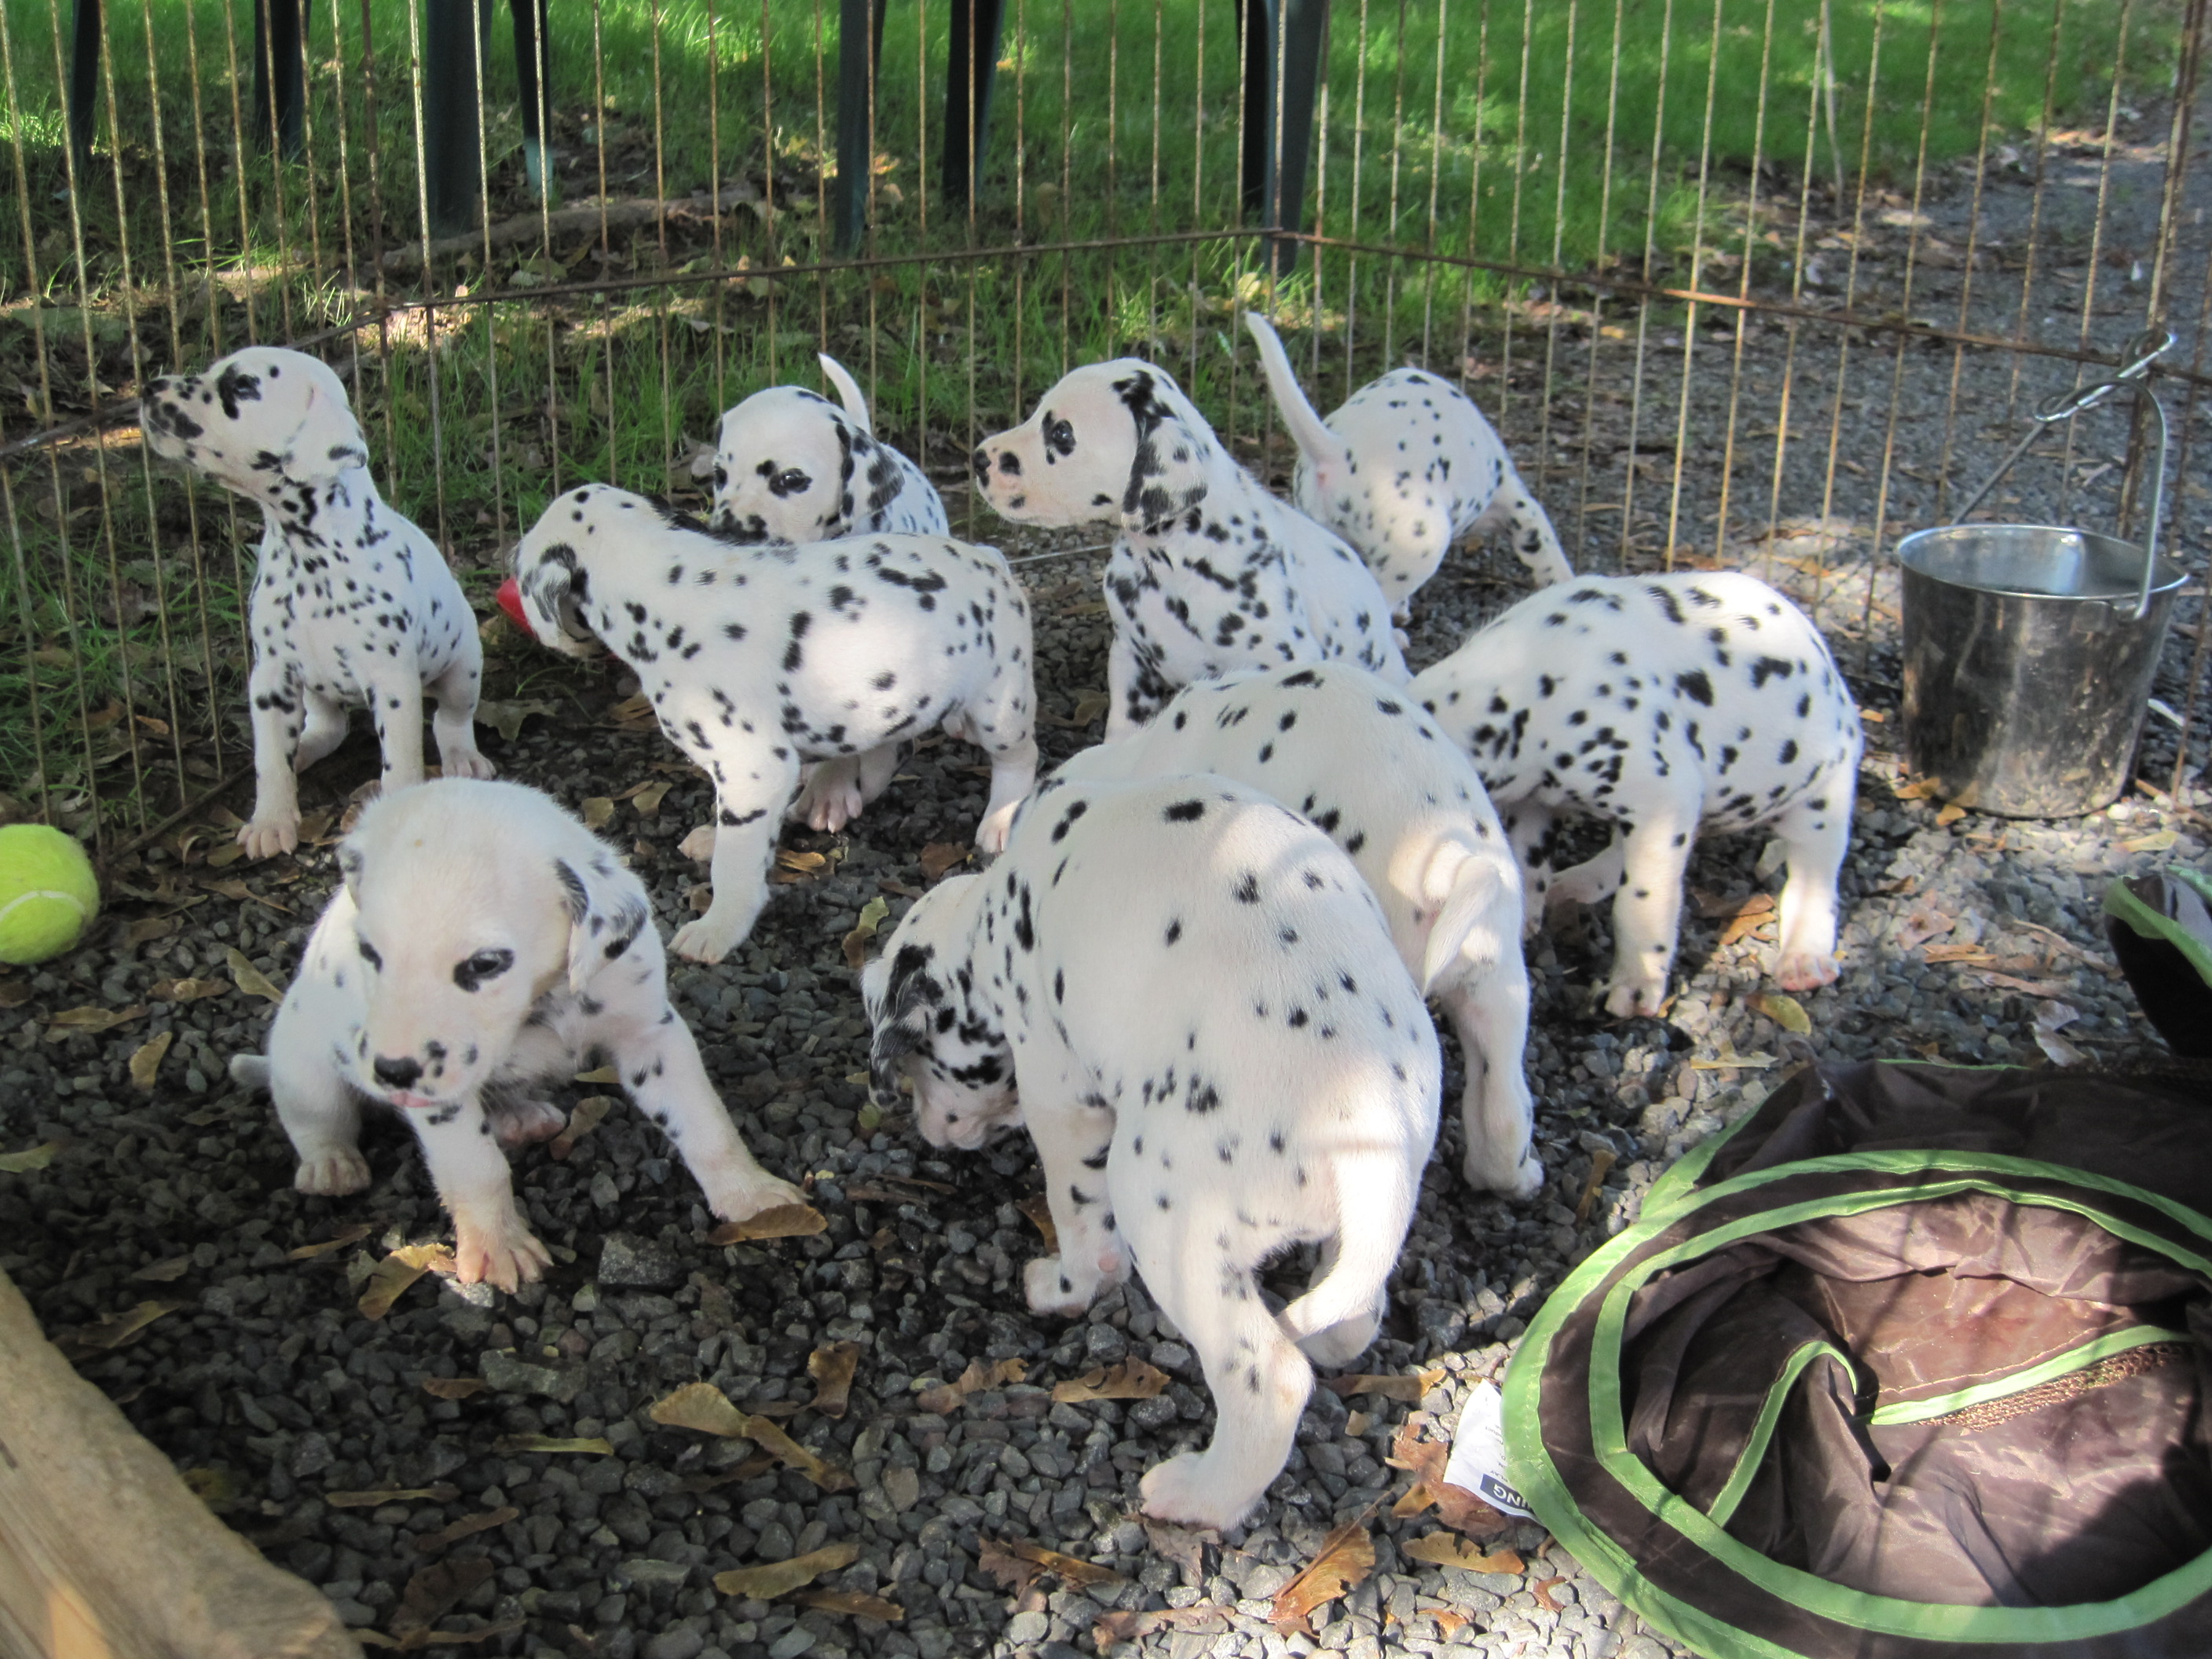 Dalmatian Puppies - Everything About Dalmatians